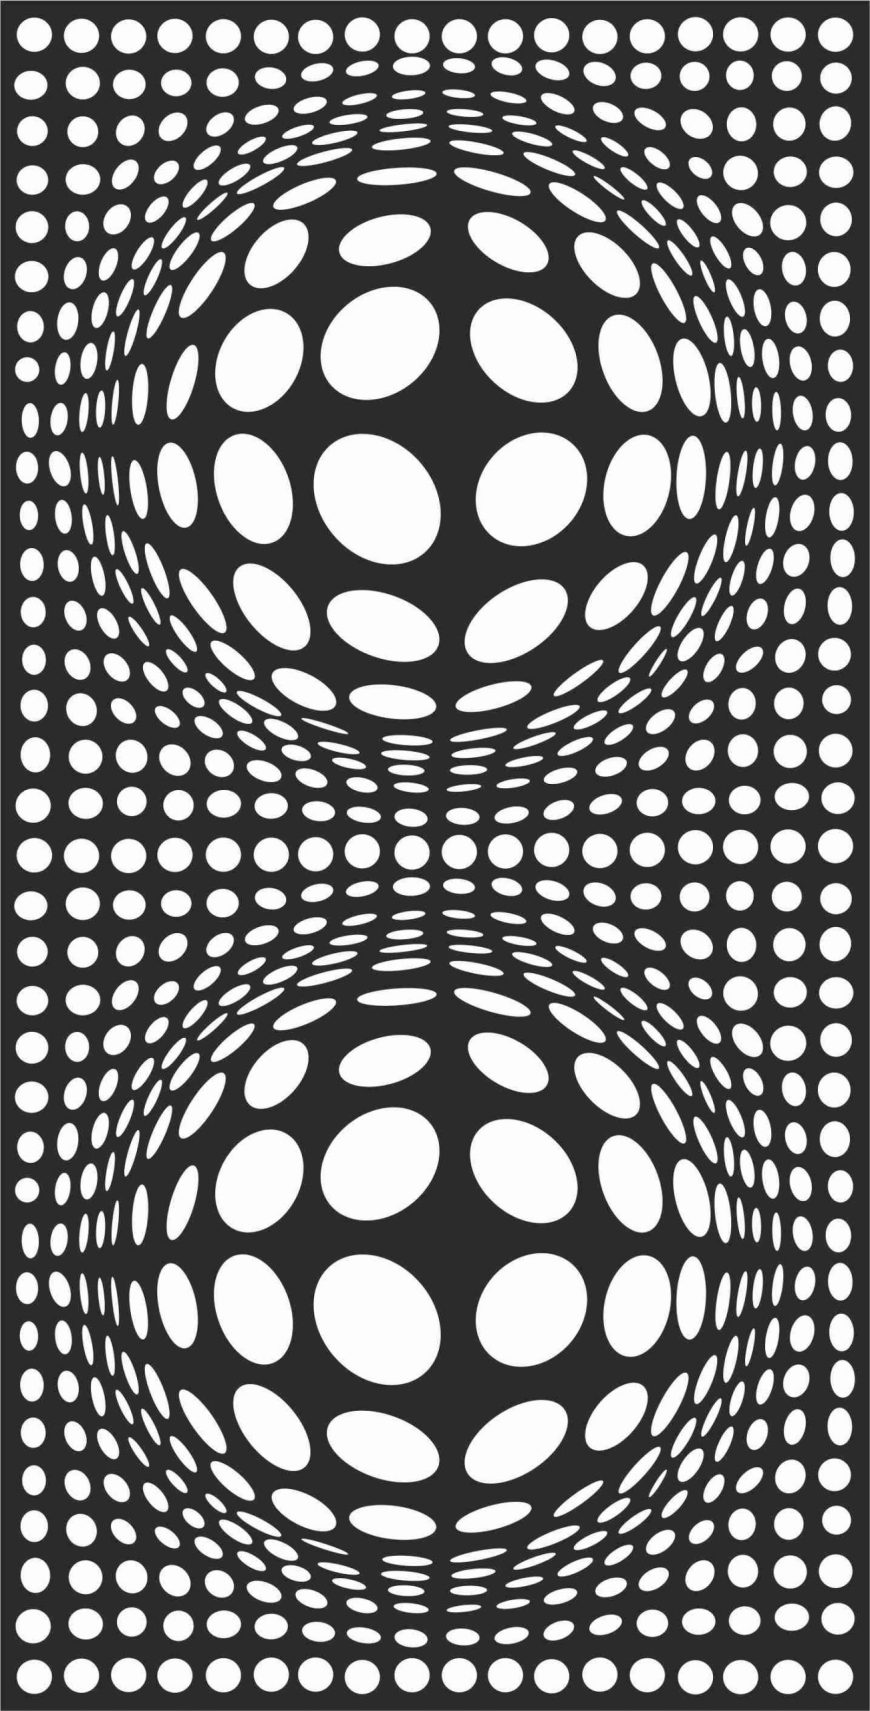 Decorative Screen Patterns For Laser Cutting 136 Free DXF File